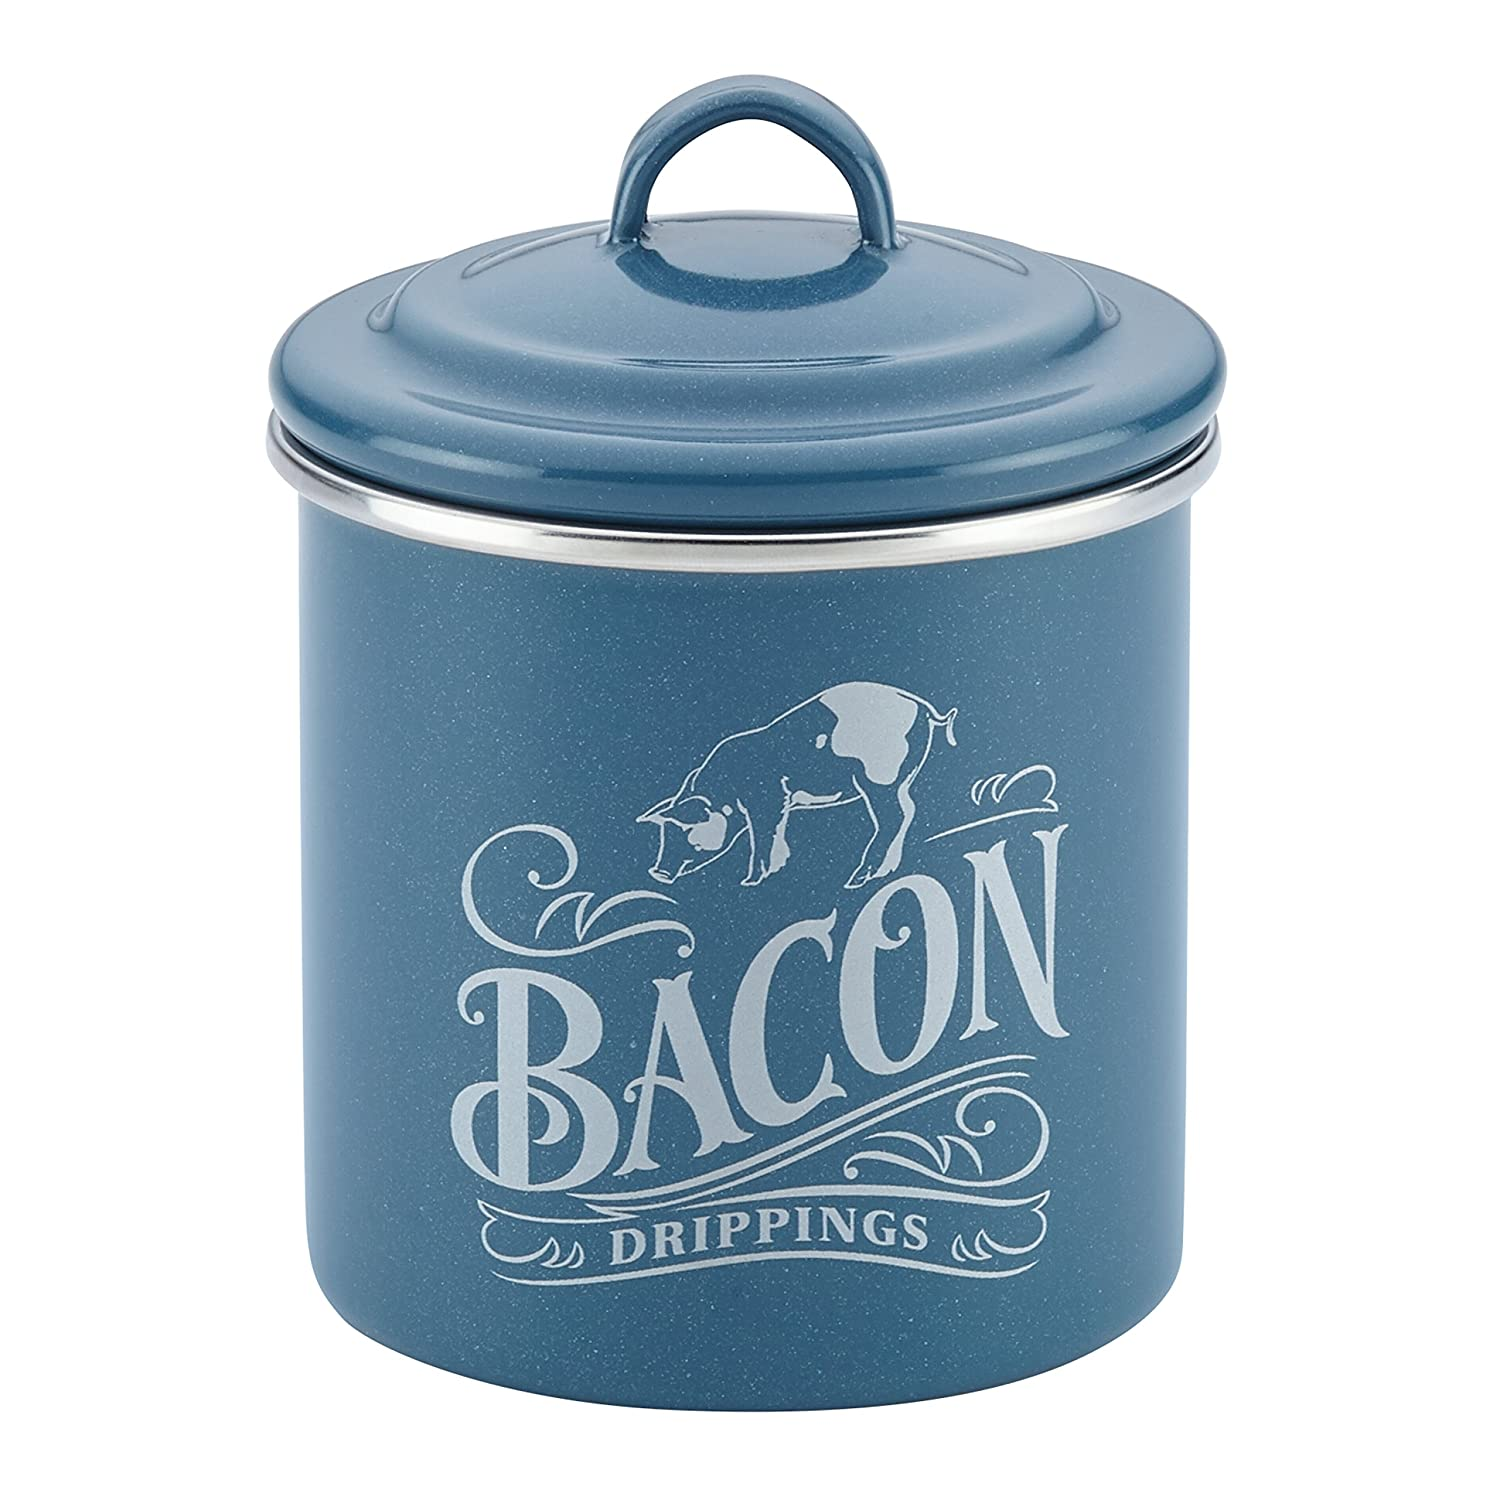 Ayesha Curry 46949 Enamel on Steel Bacon Grease Can, Twilight Teal